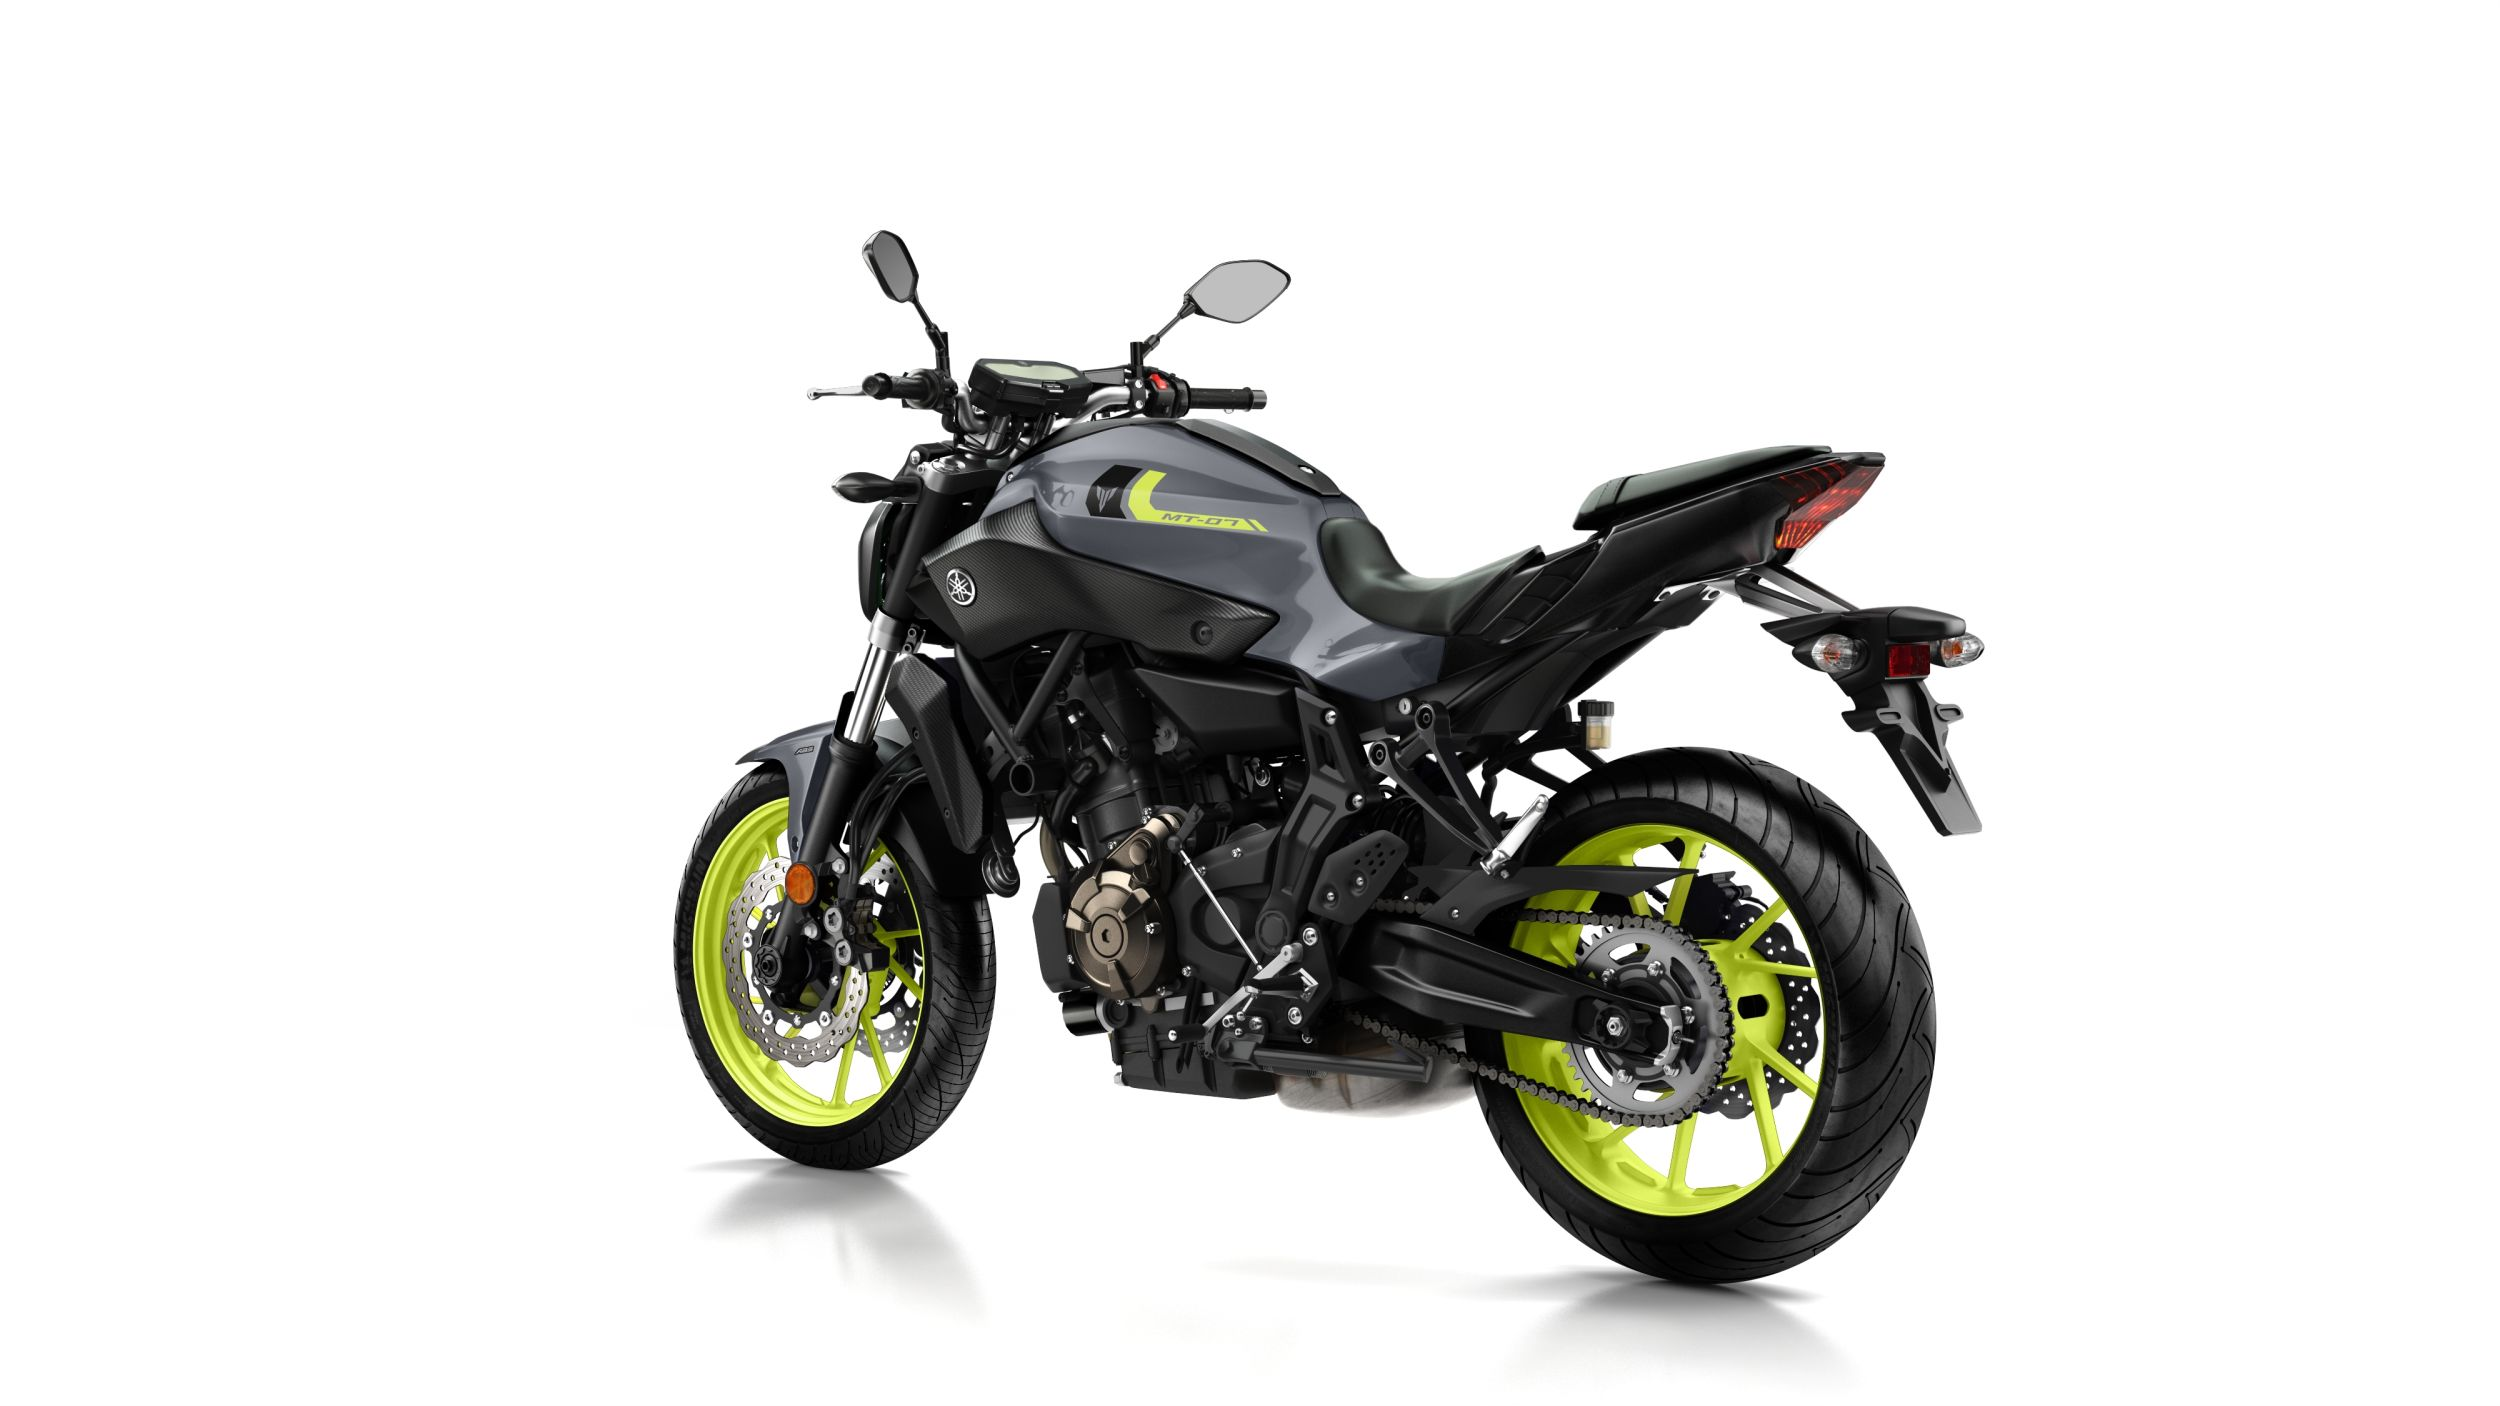 gebrauchte yamaha mt 07 motorr der kaufen. Black Bedroom Furniture Sets. Home Design Ideas